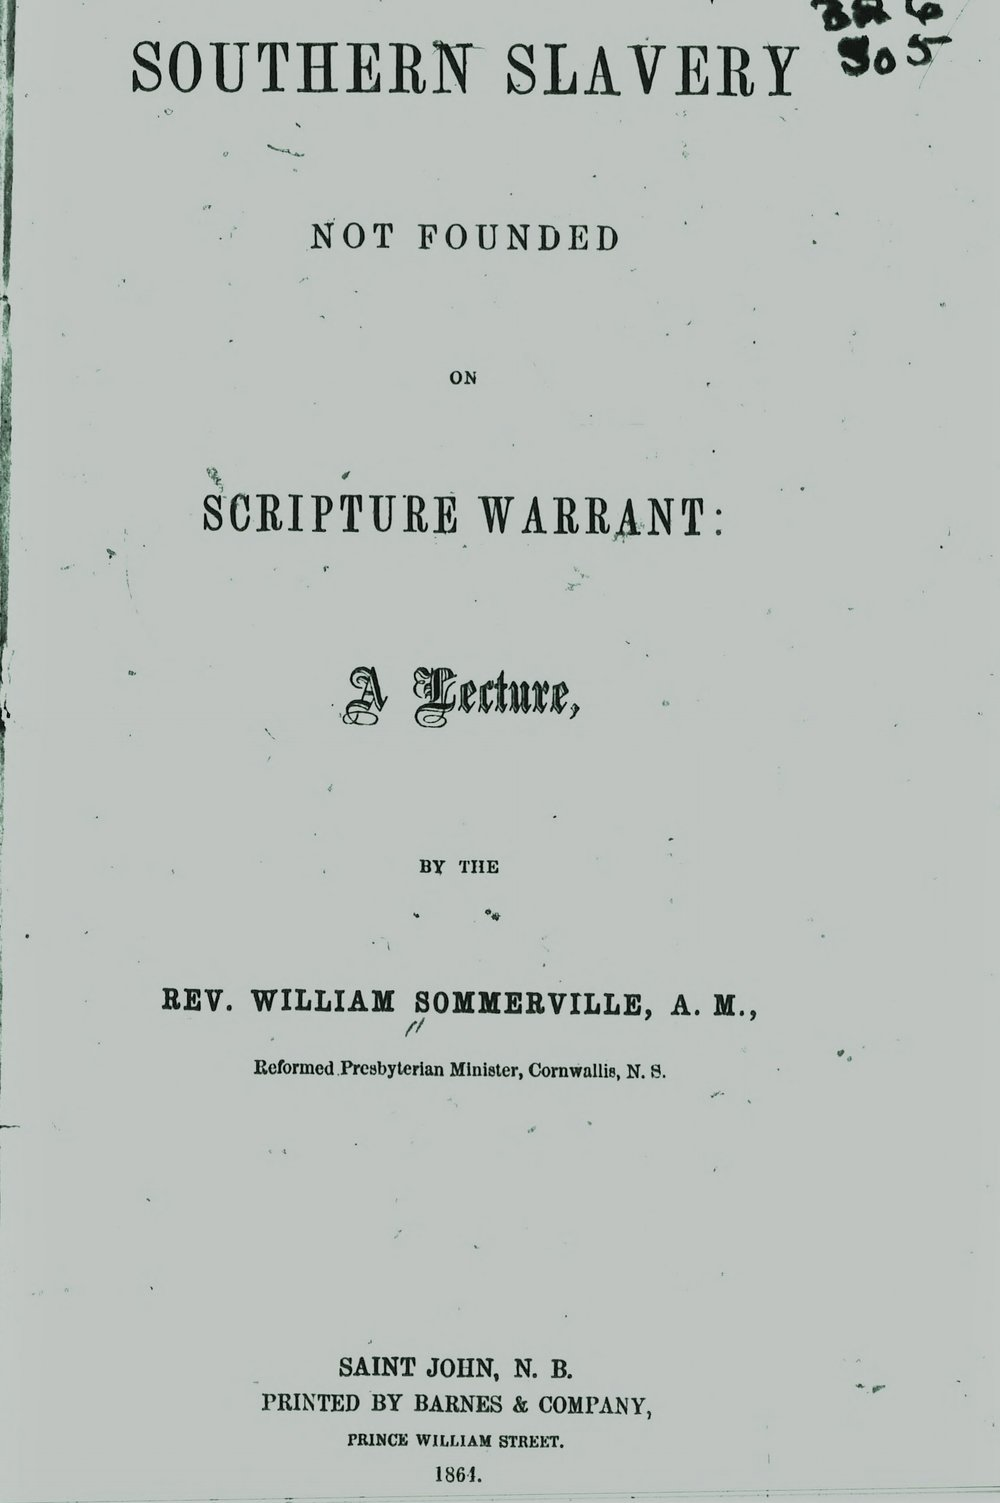 Sommerville, William, Southern Slavery Not Founded on Scripture Warrant Title Page.jpg